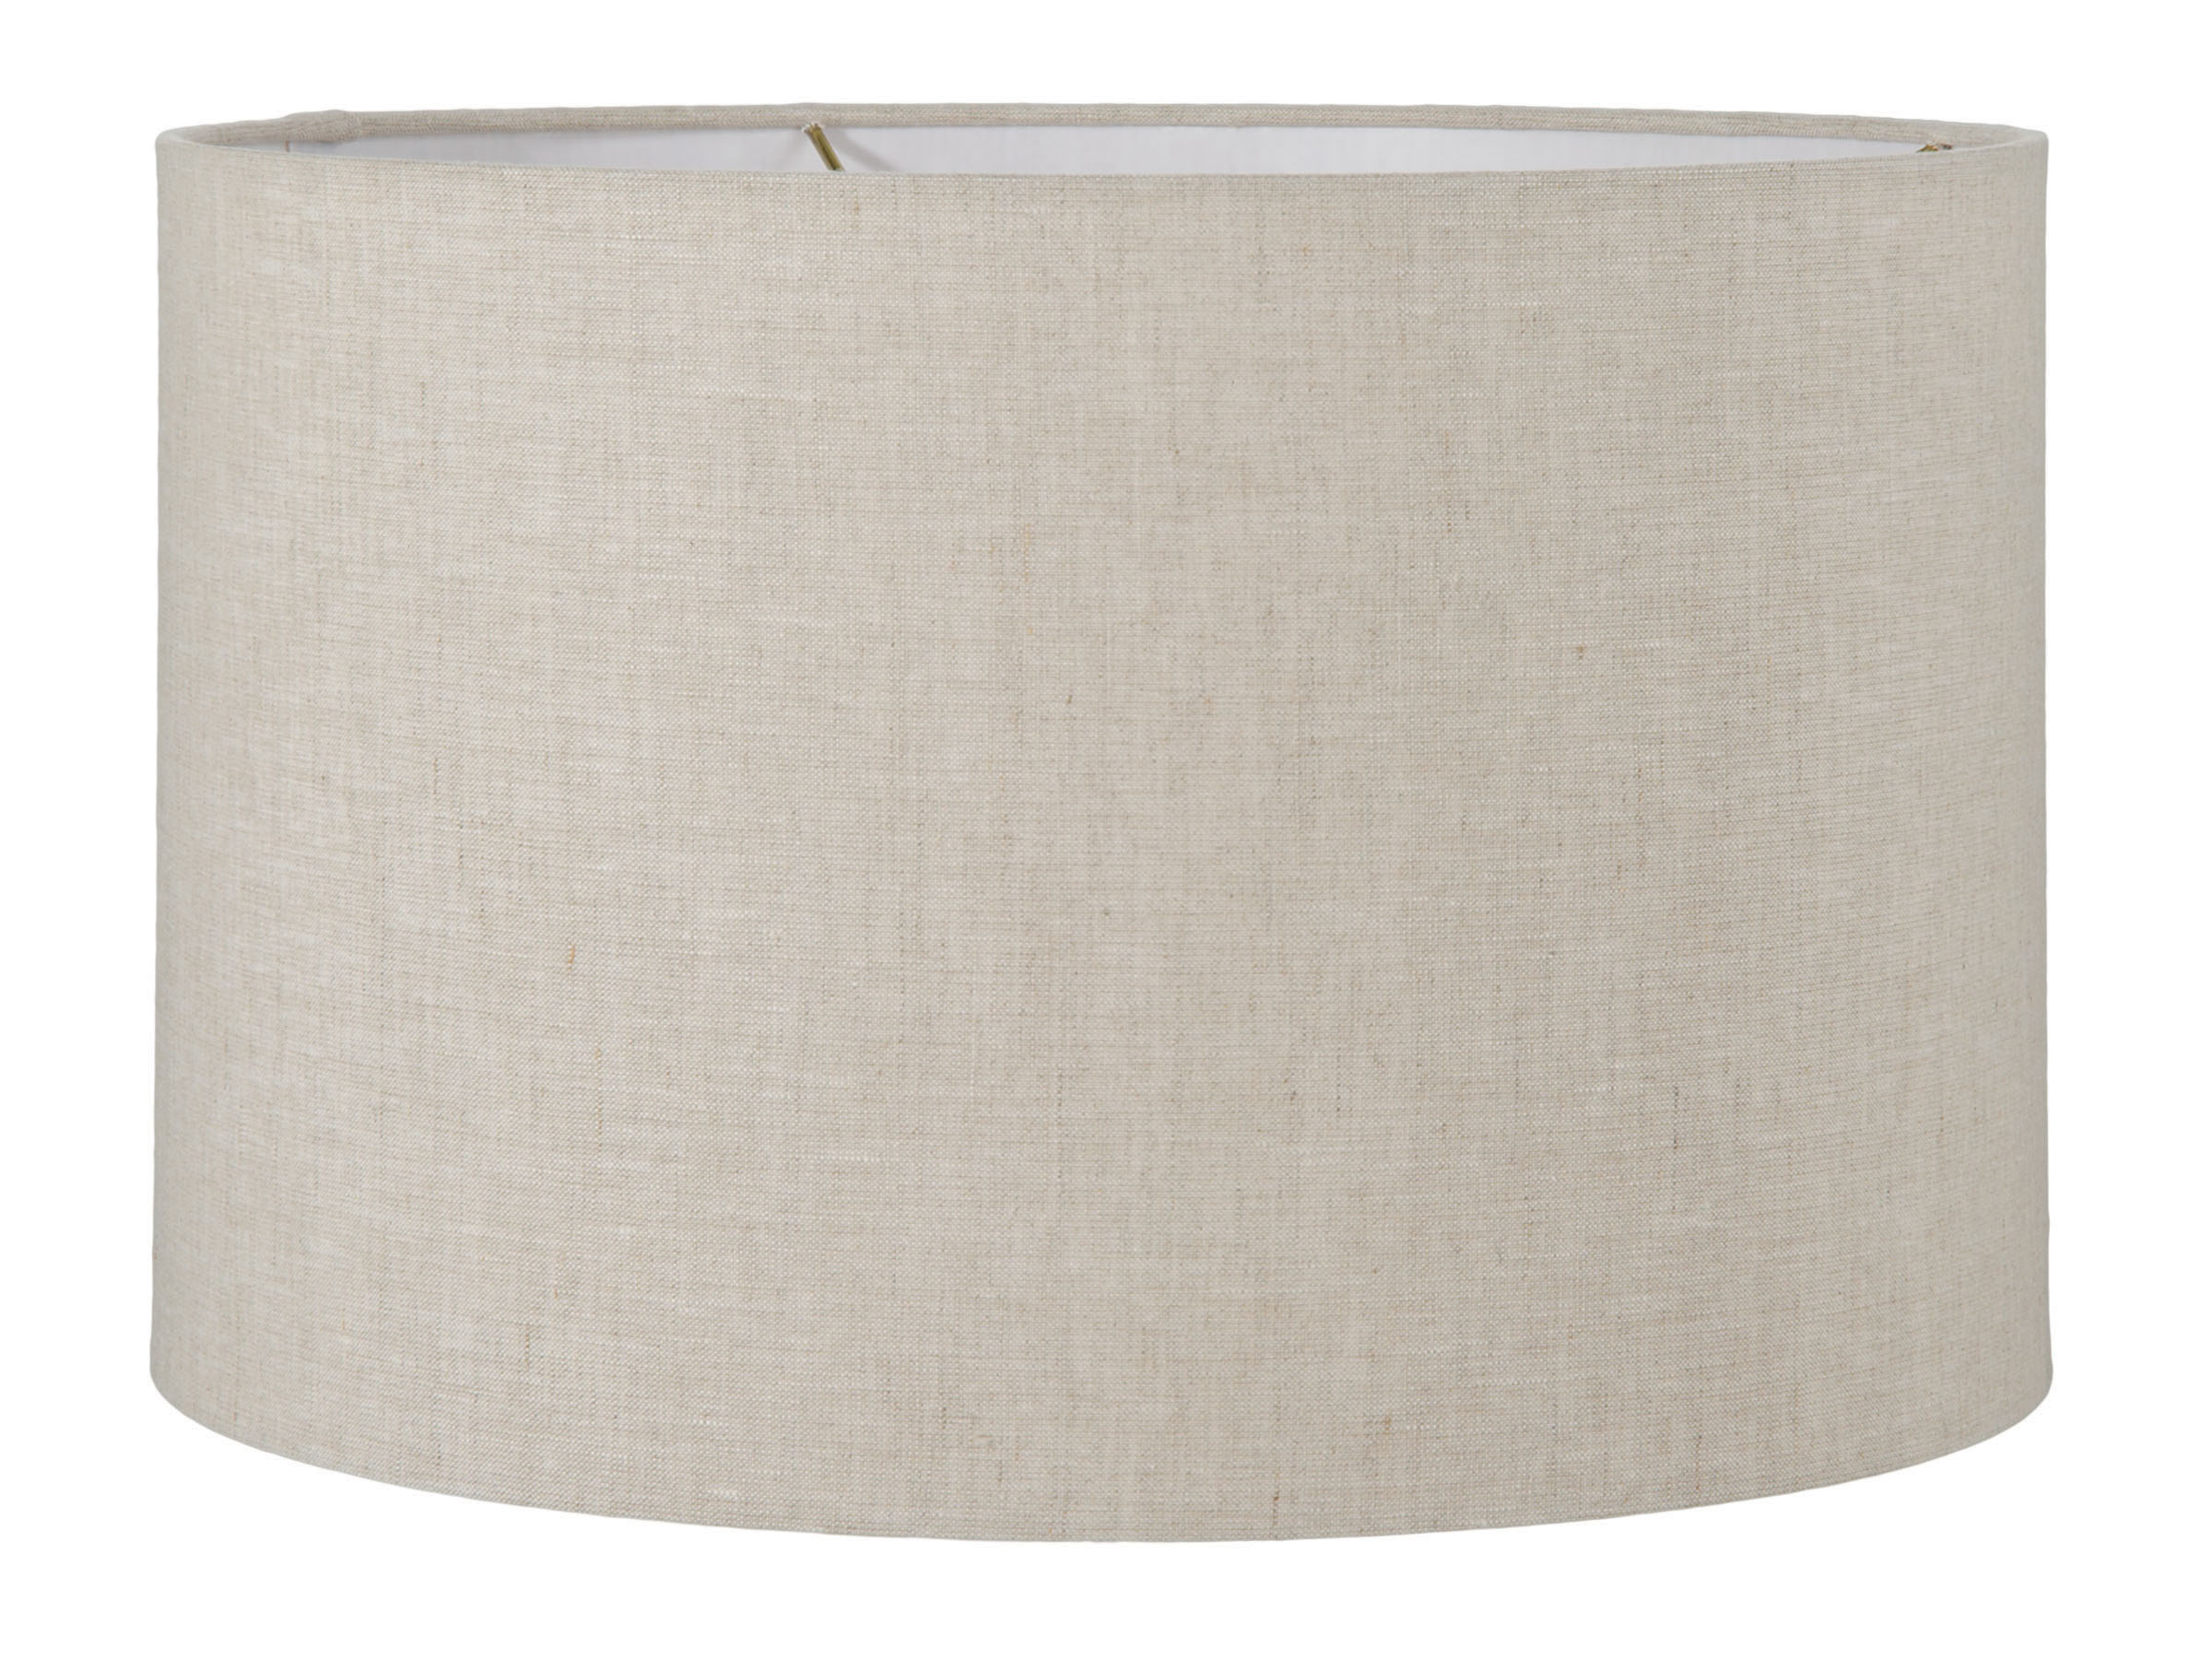 Natural linen drum lampshade 05641a bp lamp supply view image in new window aloadofball Gallery